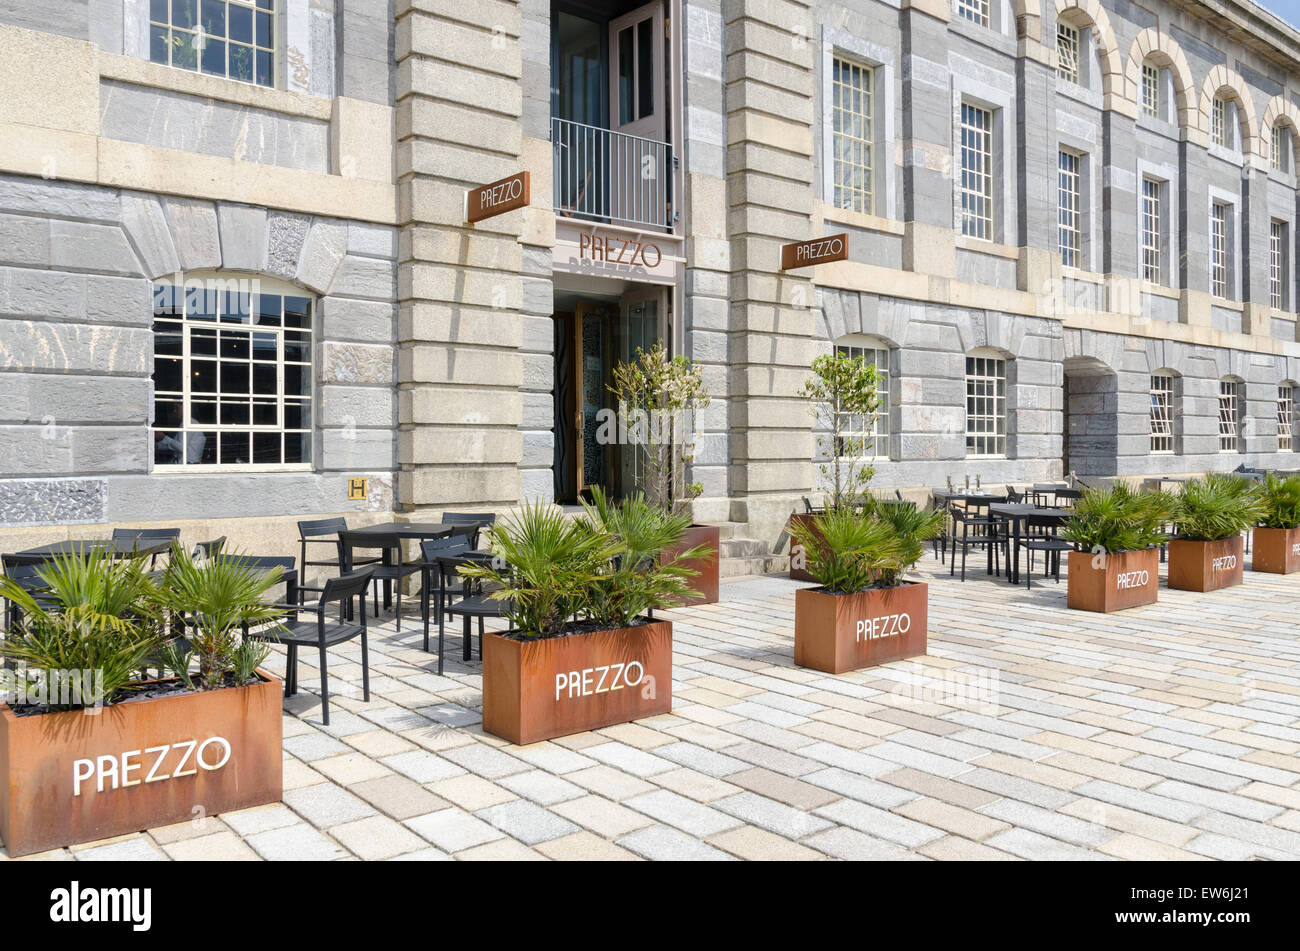 Flower Planters Outside Prezzo Restaurant In Royal William Yard, Plymouth